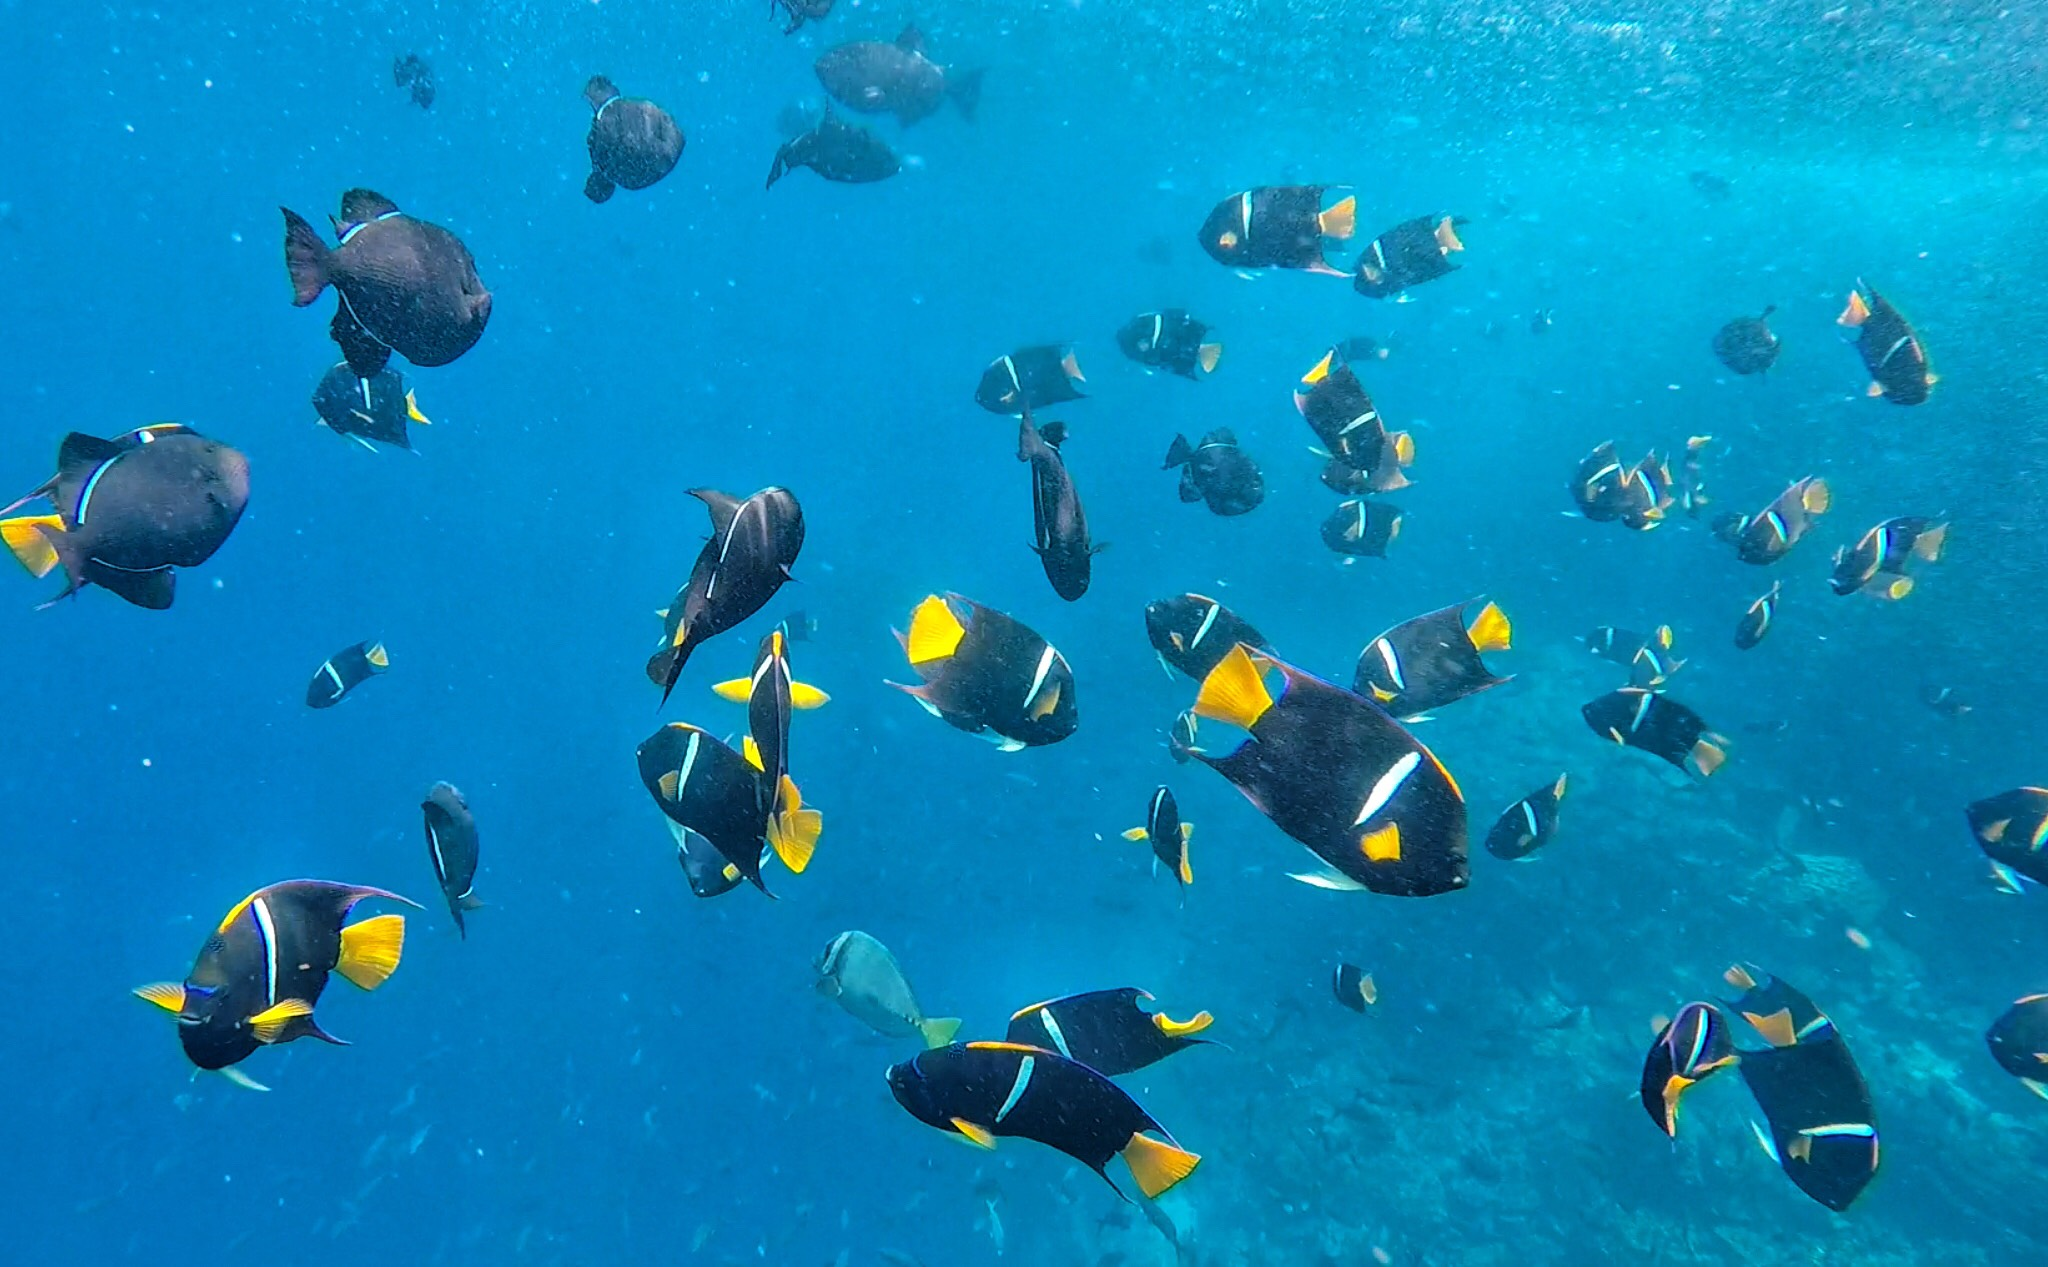 Galapagos | picture of school of fish